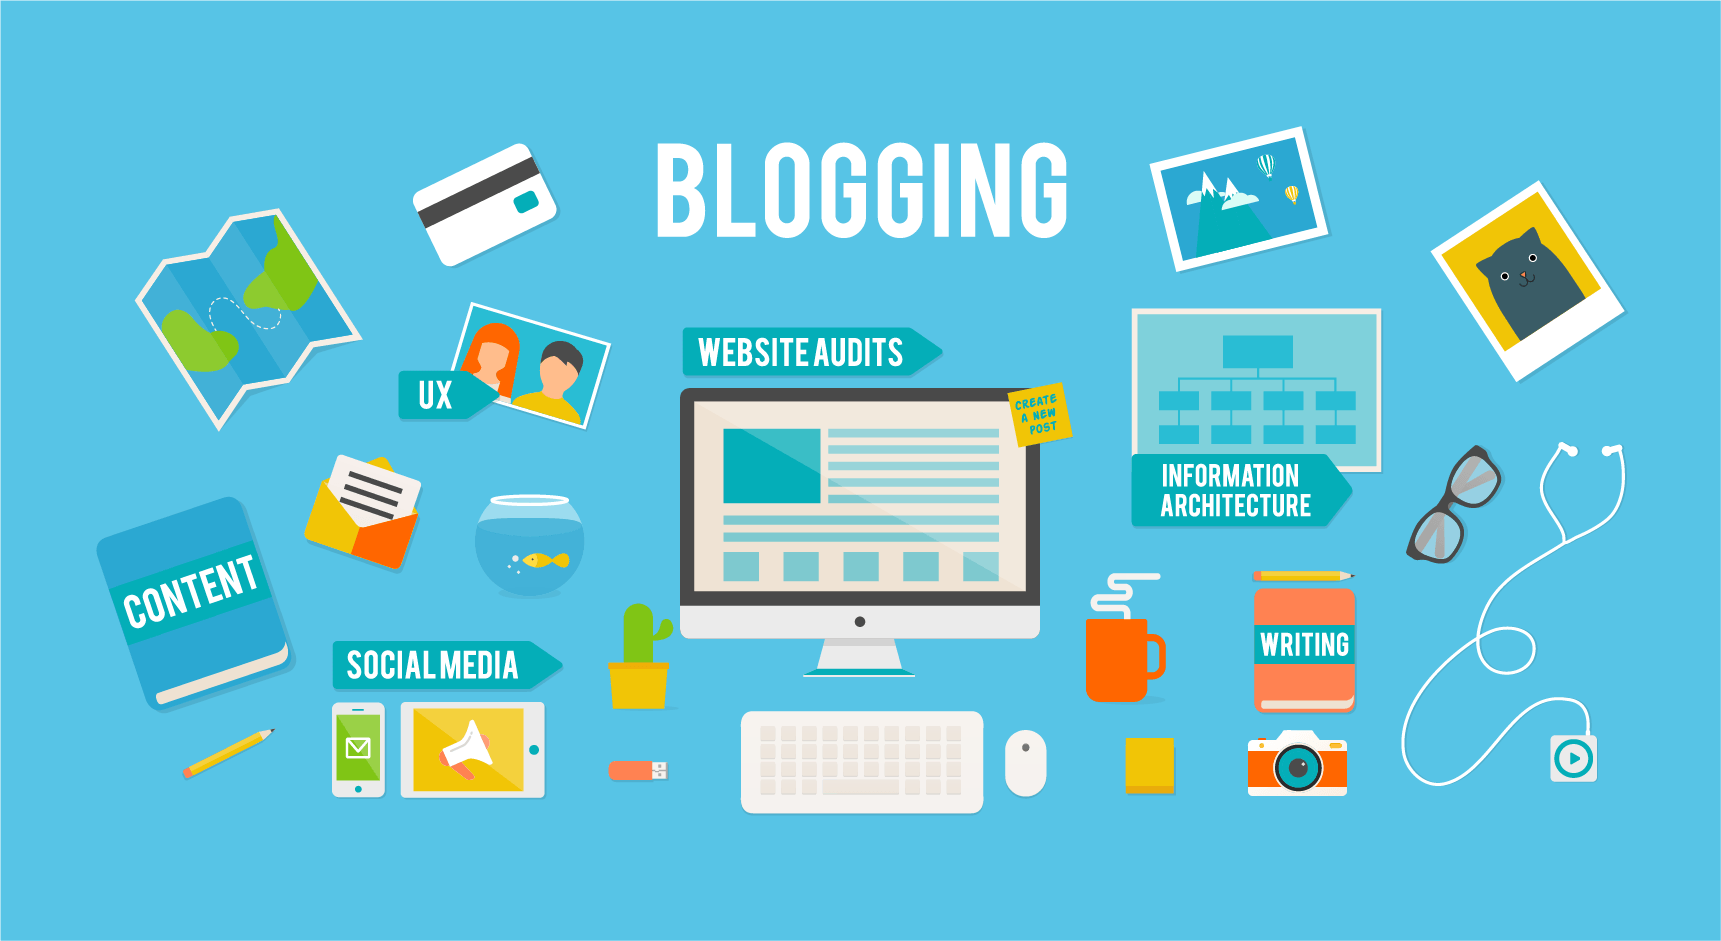 Is Blogging Profitable